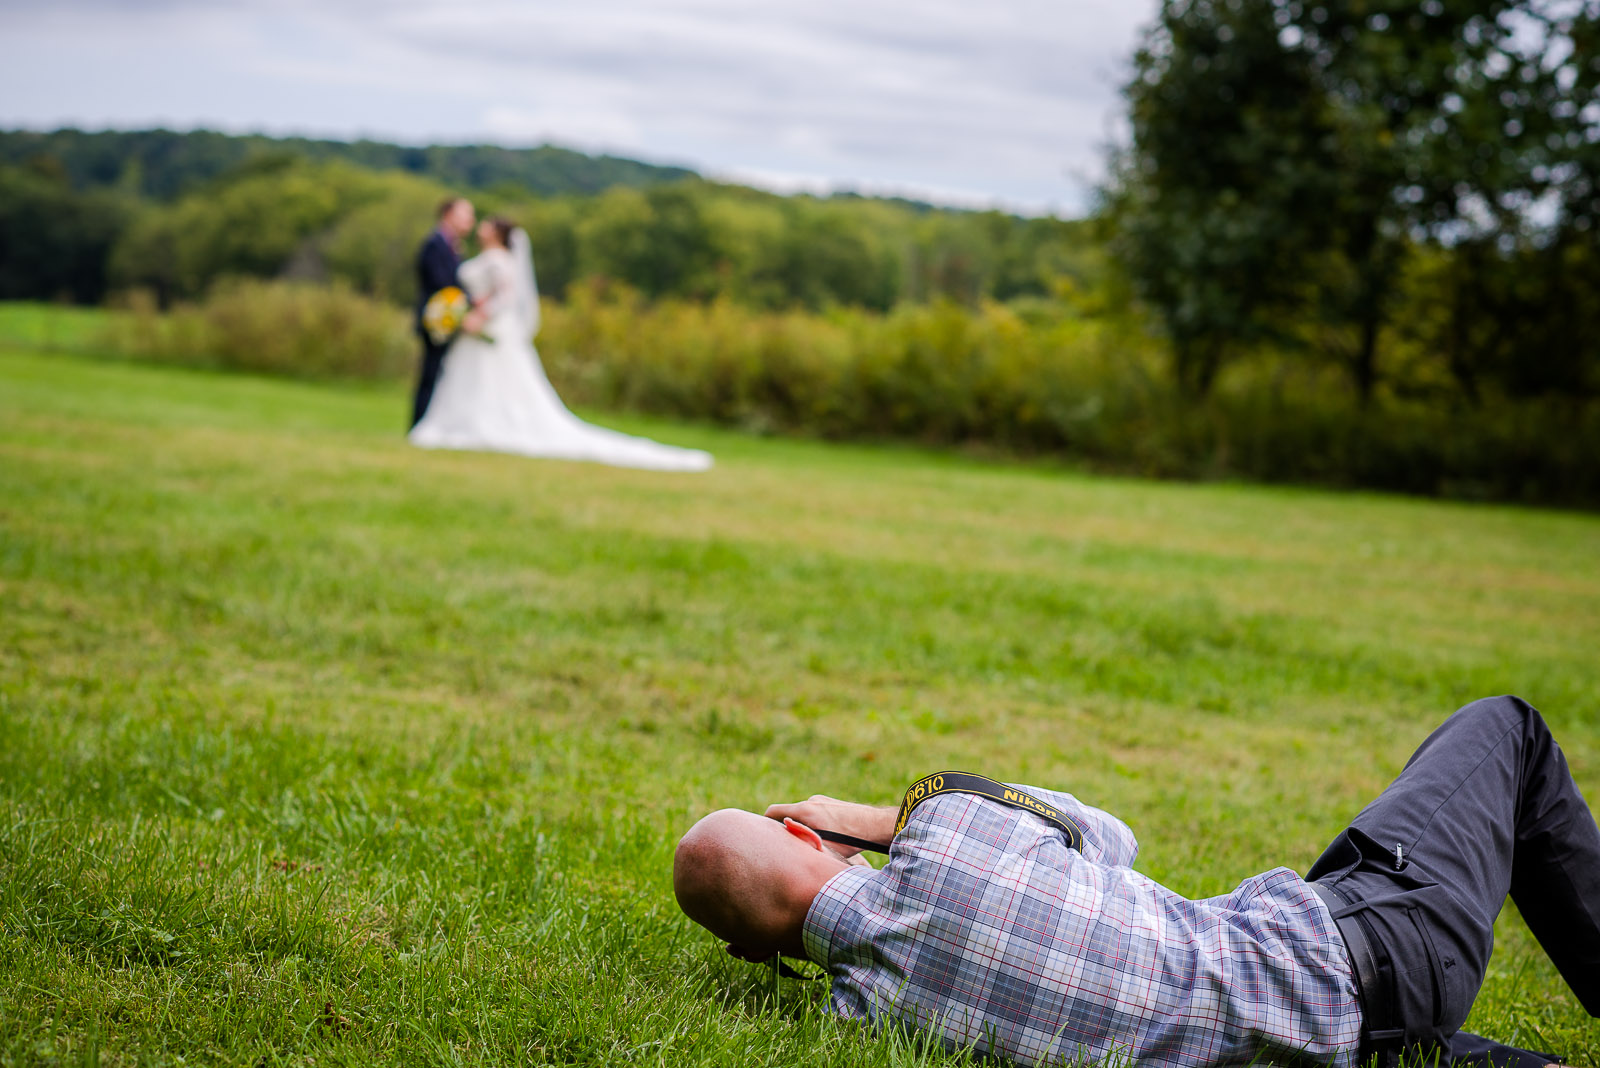 Eric_and_Christy_Photography_Blog_Wedding_Stacey_Geoff-83